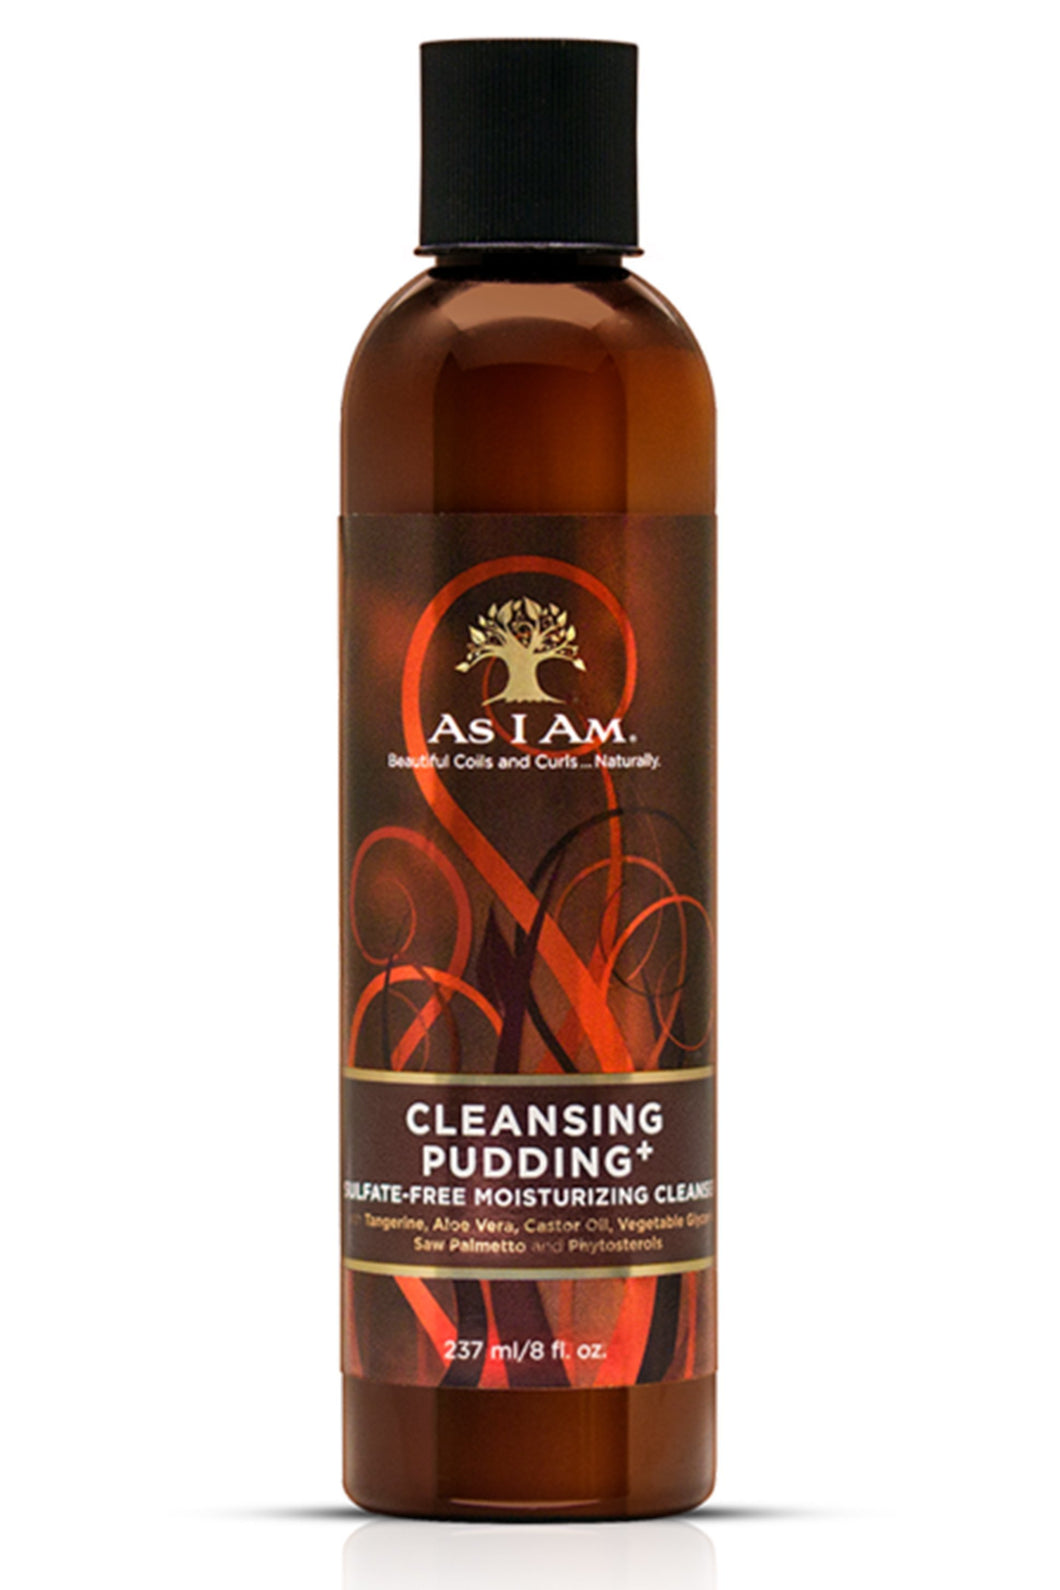 AS I AM Cleansing Pudding Moisturising Cleanser (237ml)